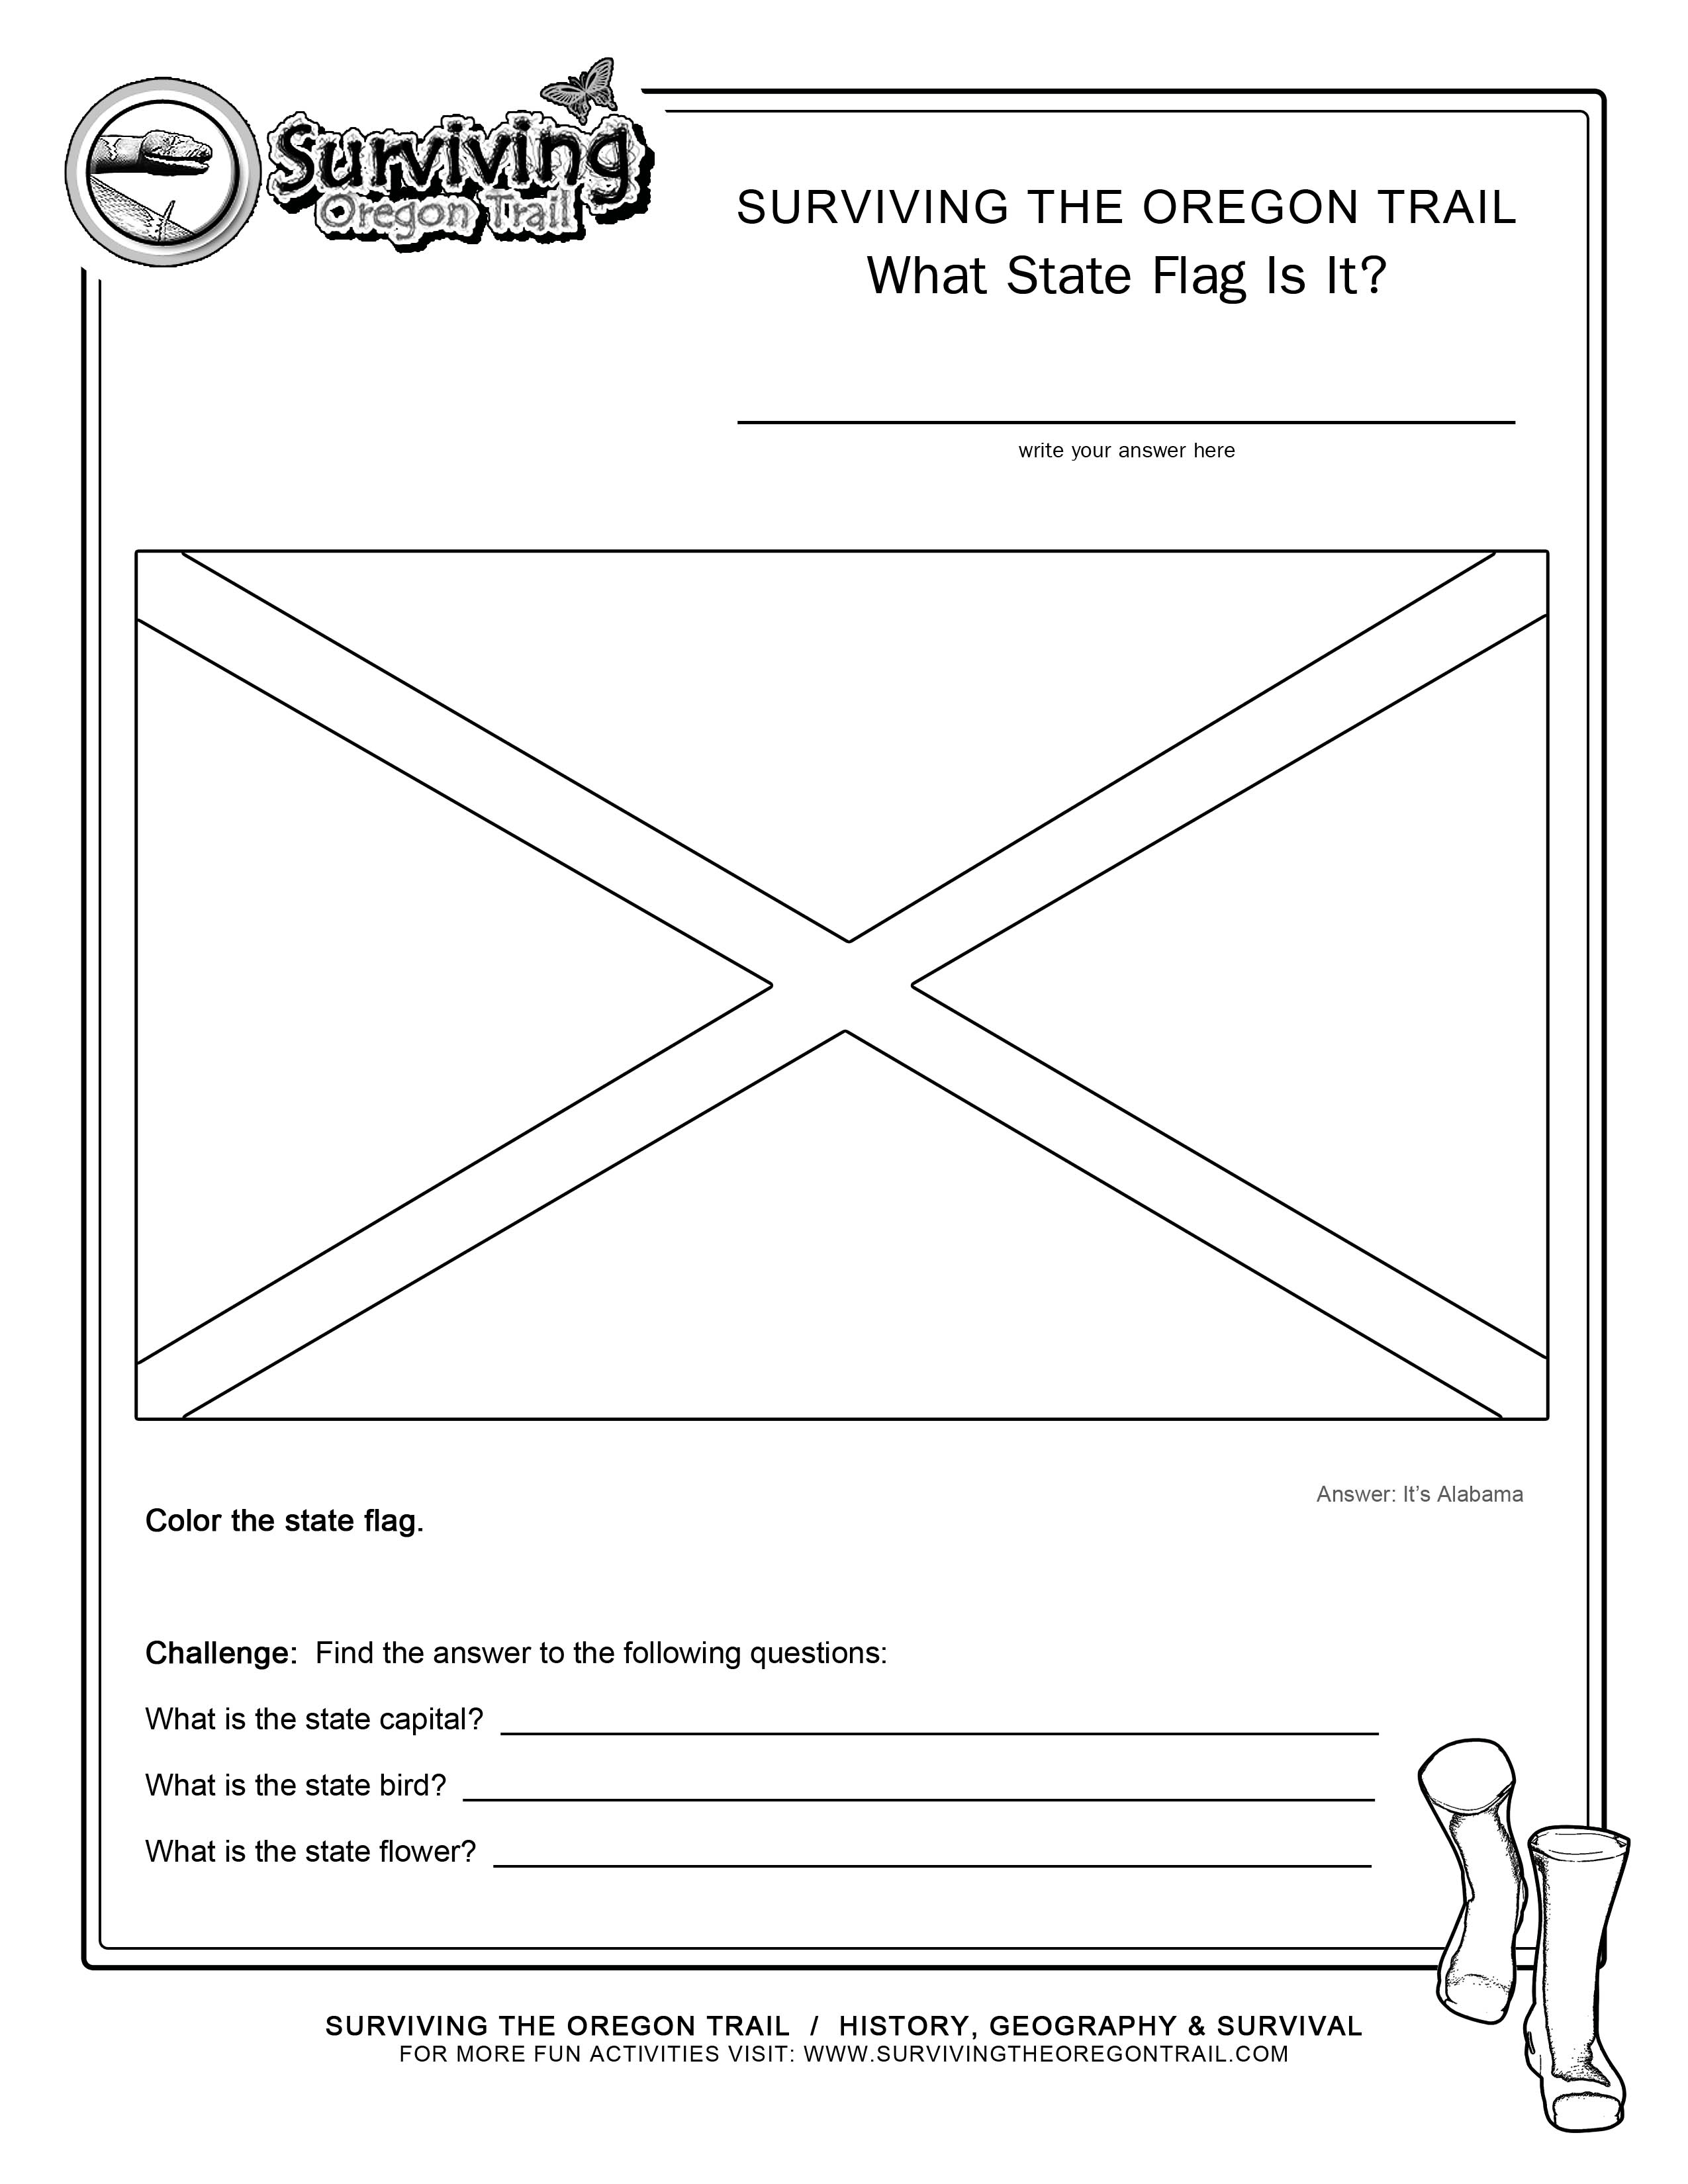 alabama state flag coloring page - coloring page state flag alabama printable worksheet